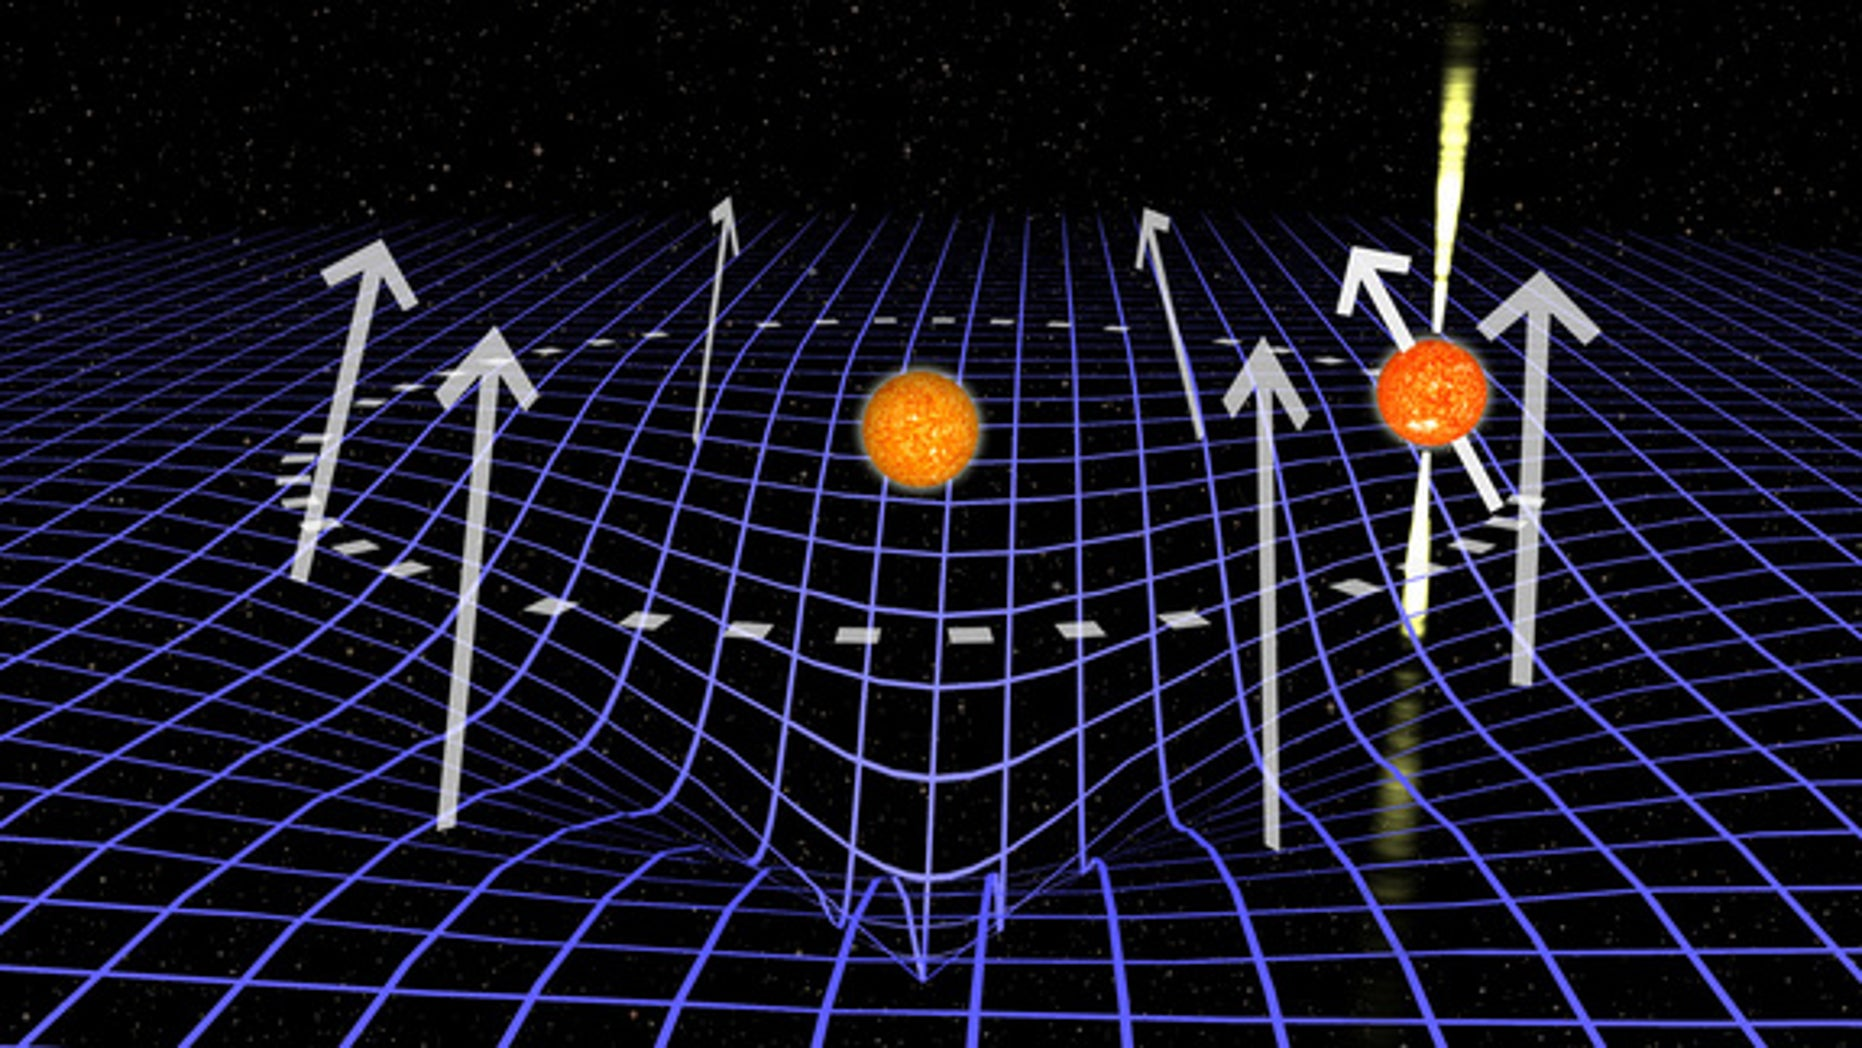 This graphic depicts the pulsar J1906 (at right with radio beams) and its companion star, with the curvature of spacetime in the region illustrated by a blue grid. This curvature has led to the pulsar's apparent disappearance in the sky, scient